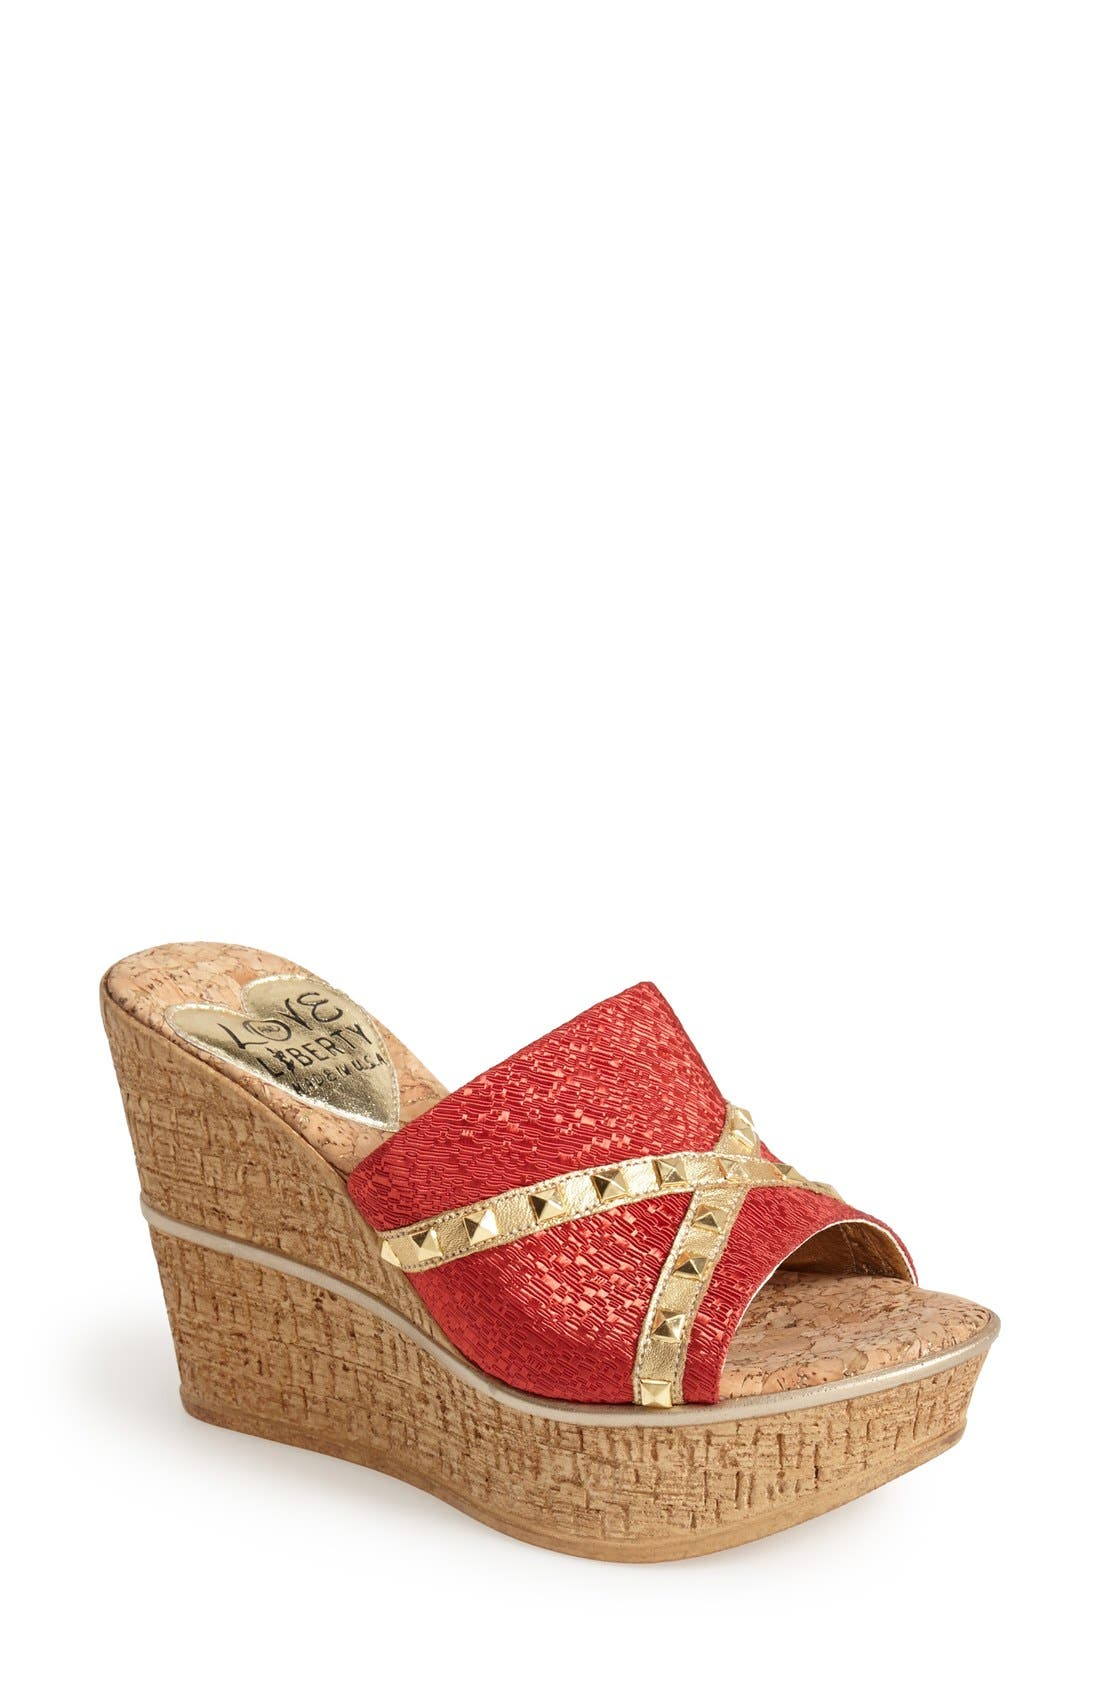 Main Image - Love and Liberty 'Margo' Wedge Slide Sandal (Women)